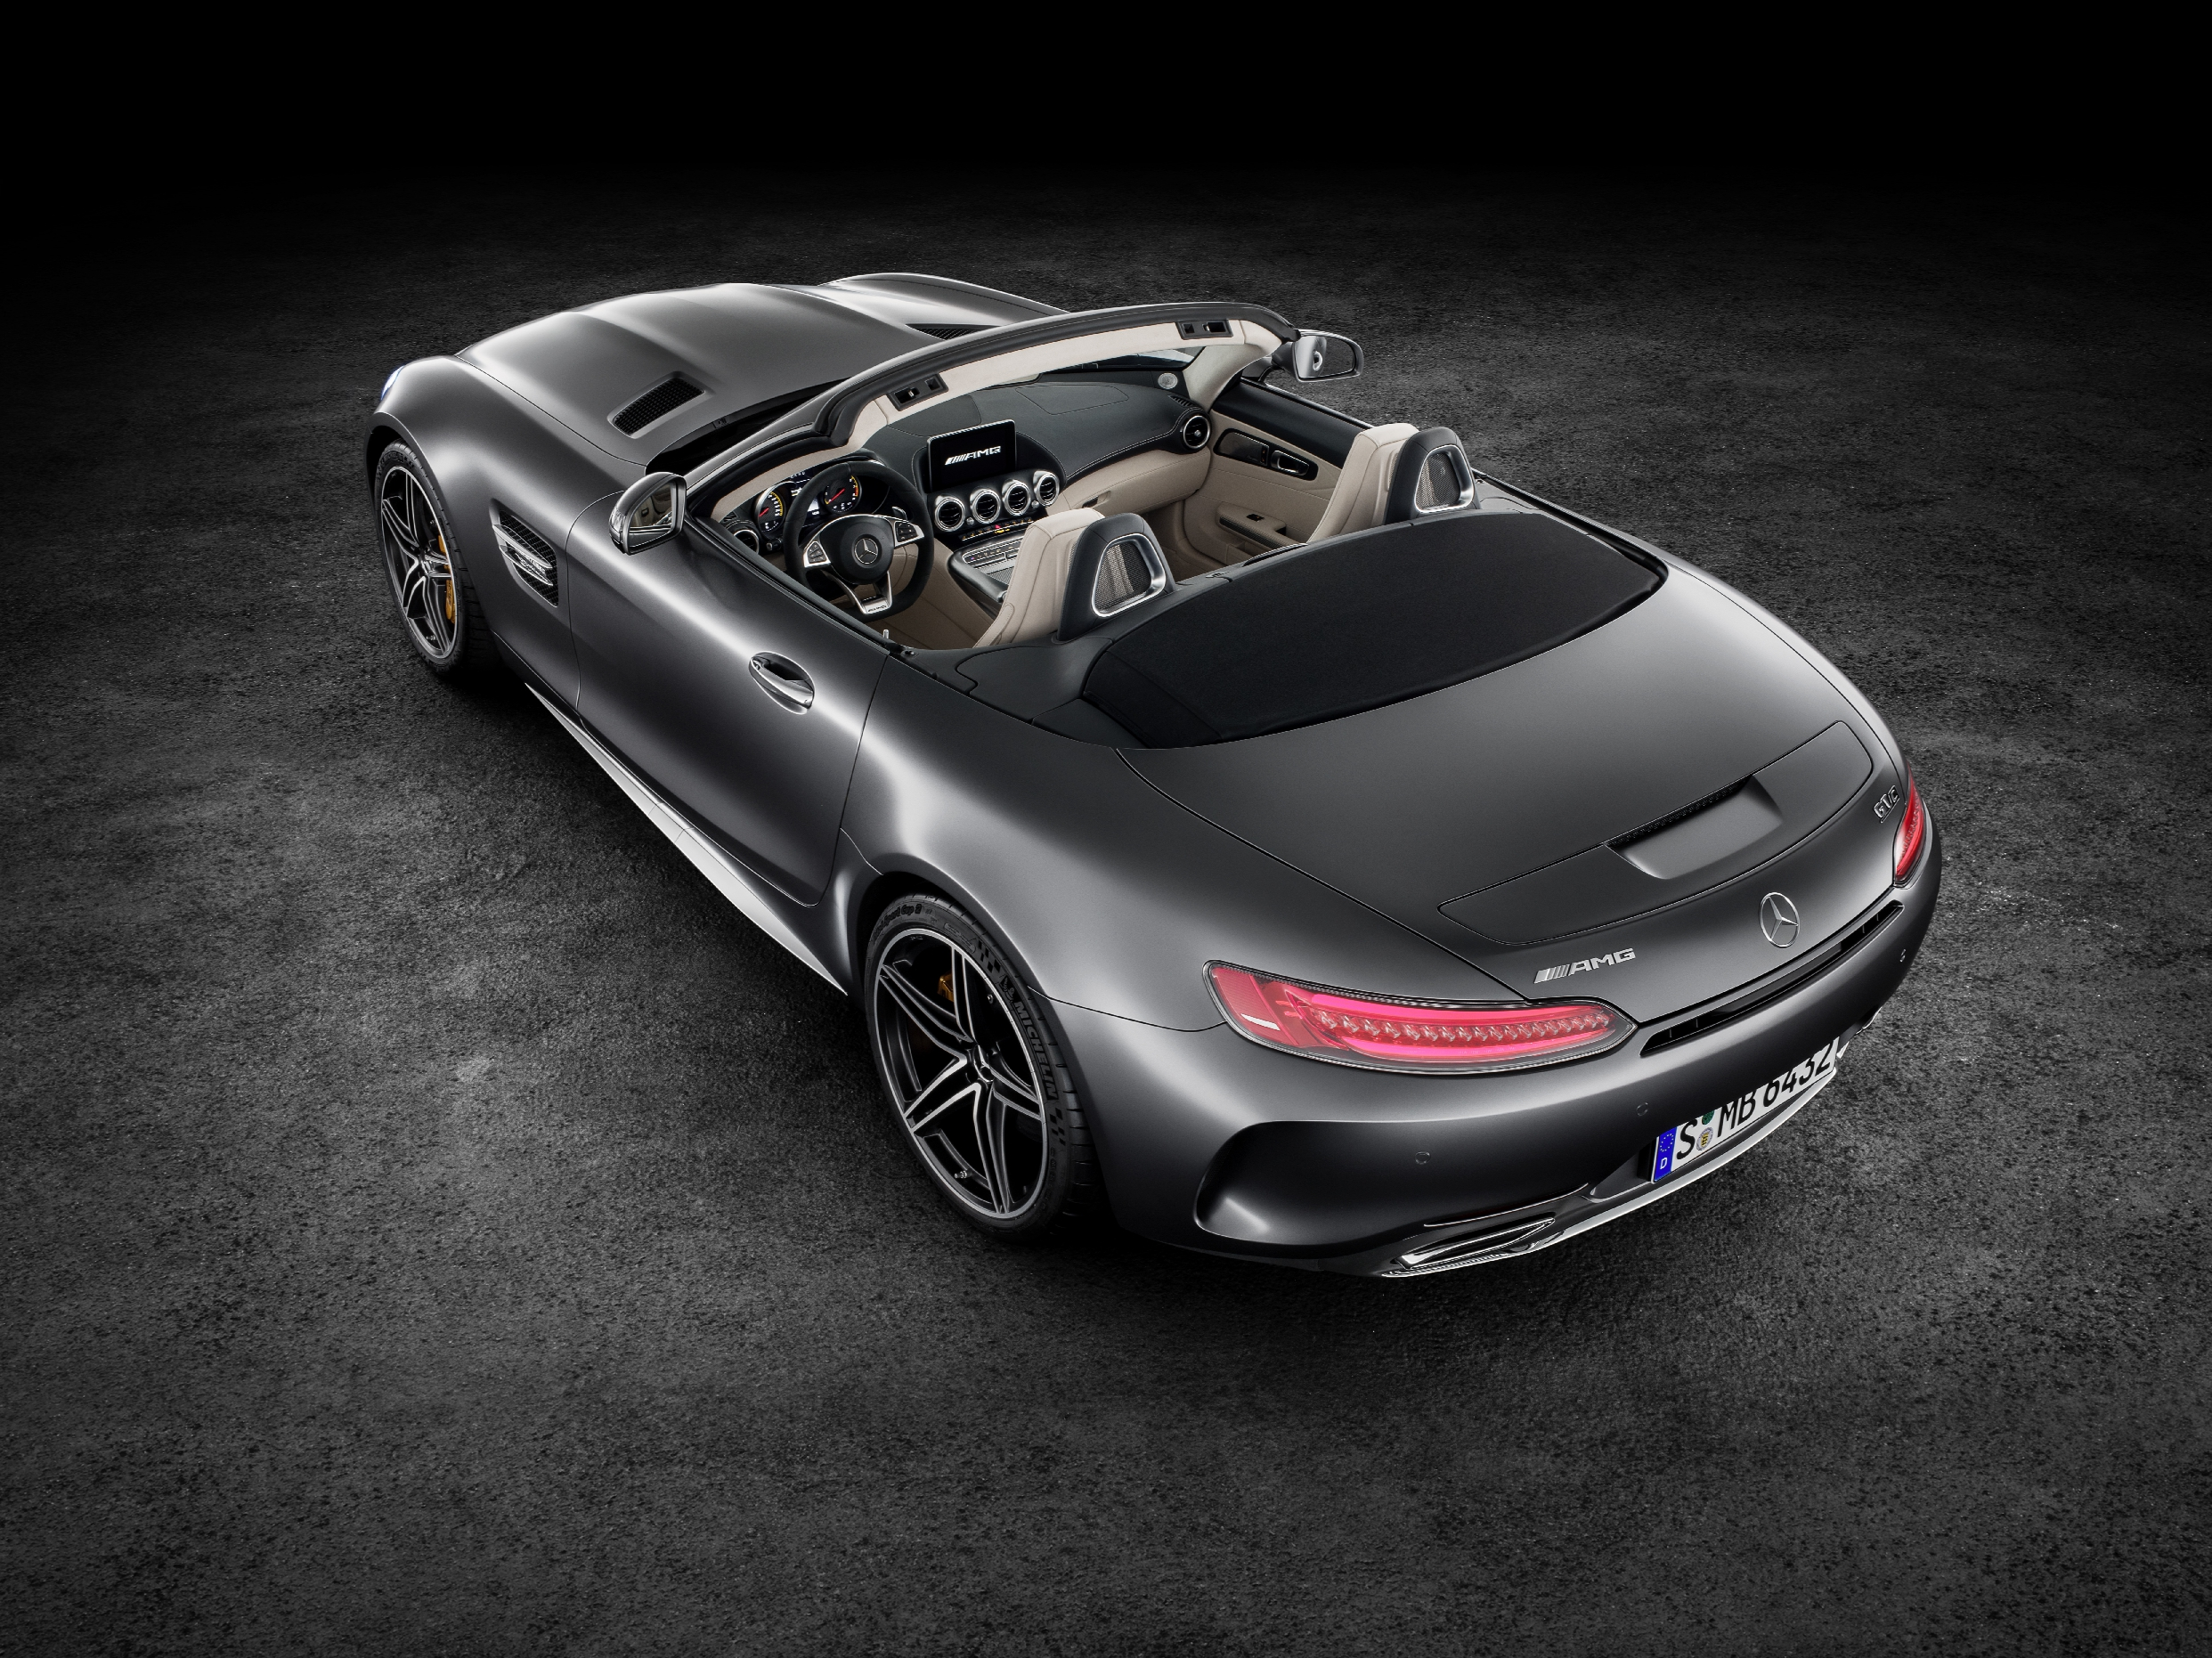 AMG GT C Roadster (R 190), 2016; Exterieur: designo selenitgrau magno; Interieur: Leder Nappa Exklusiv macchiatobeige; ;Kraftstoffverbrauch kombiniert: 11,4 l/100 km, CO2-Emissionen kombiniert: 259 g/km AMG GT C Roadster (R 190), 2016; exterior: designo selenit grey magno; interior:Nappa leather exclusive macchiato beige;; fuel consumption, combined: 11.4 l/100 km; combined CO2 emissions: 259 g/km